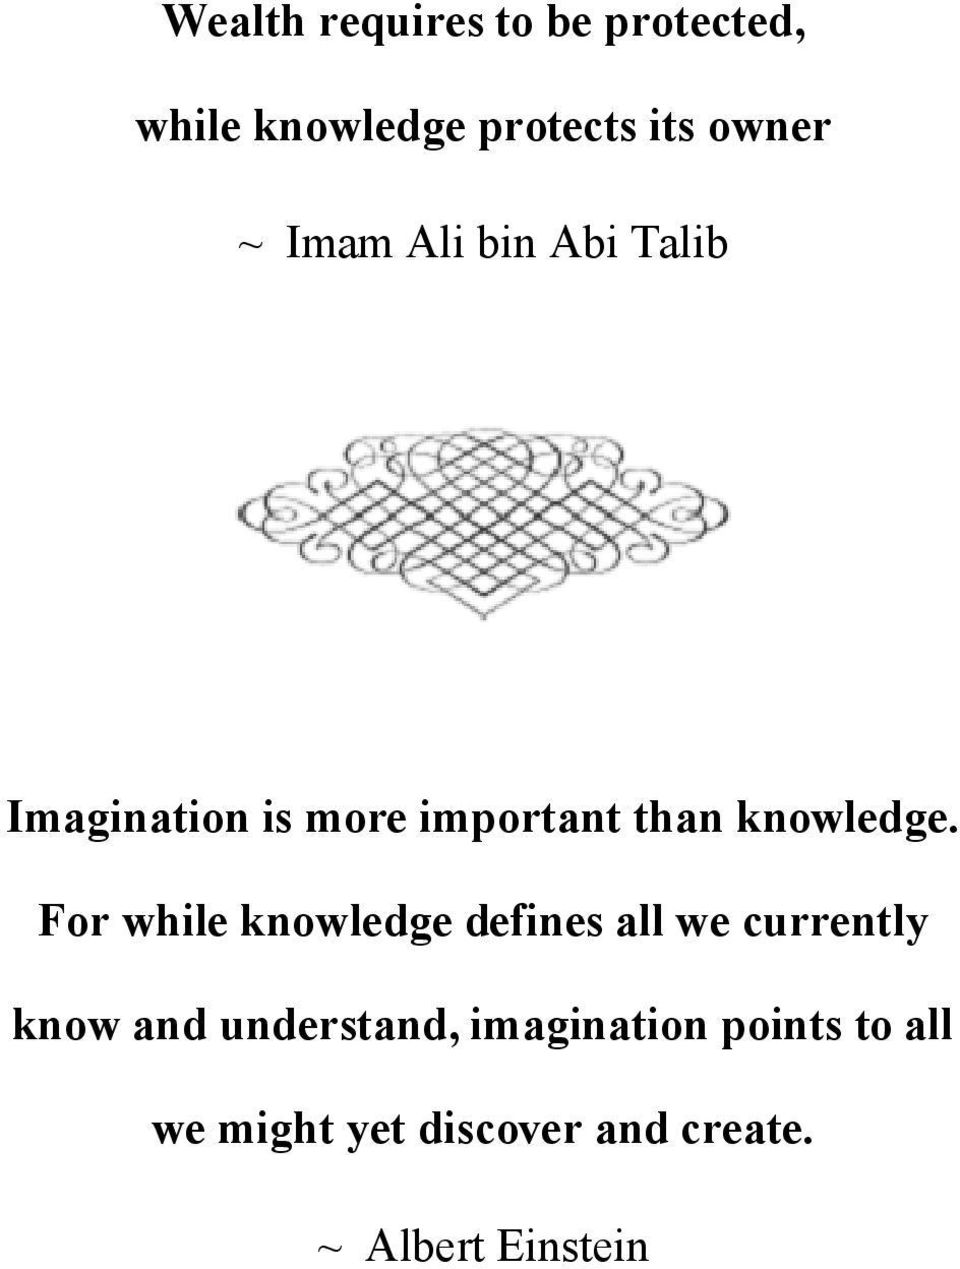 For while knowledge defines all we currently know and understand,